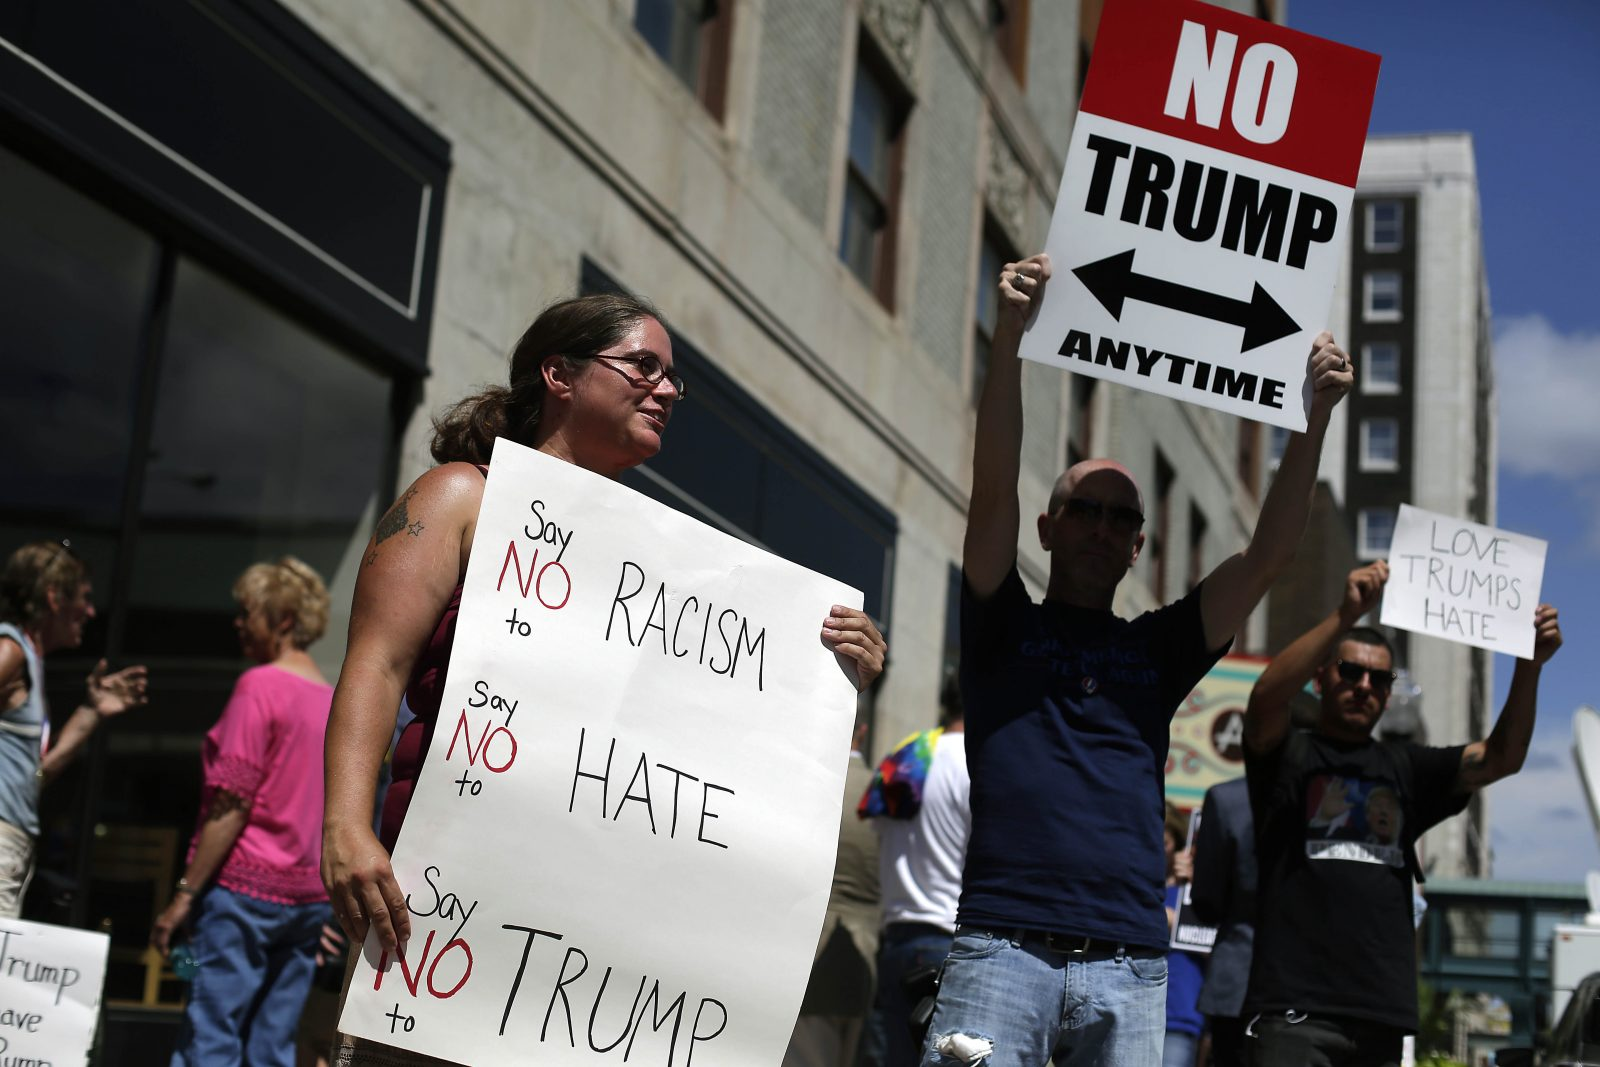 DAVENPORT, IA - JULY 28: Demonstrators hold signs as they protest Republican Presidential candidate Donald Trump during a campaign event for Trump on July 28, 2016 in Davenport, Iowa. Trump, who received the Presidential Republican nominee last week during the Republican National Convention will face Democratic Presidential candidate Hillary Clinton during the November general election. (Photo by Joshua Lott/Getty Images)